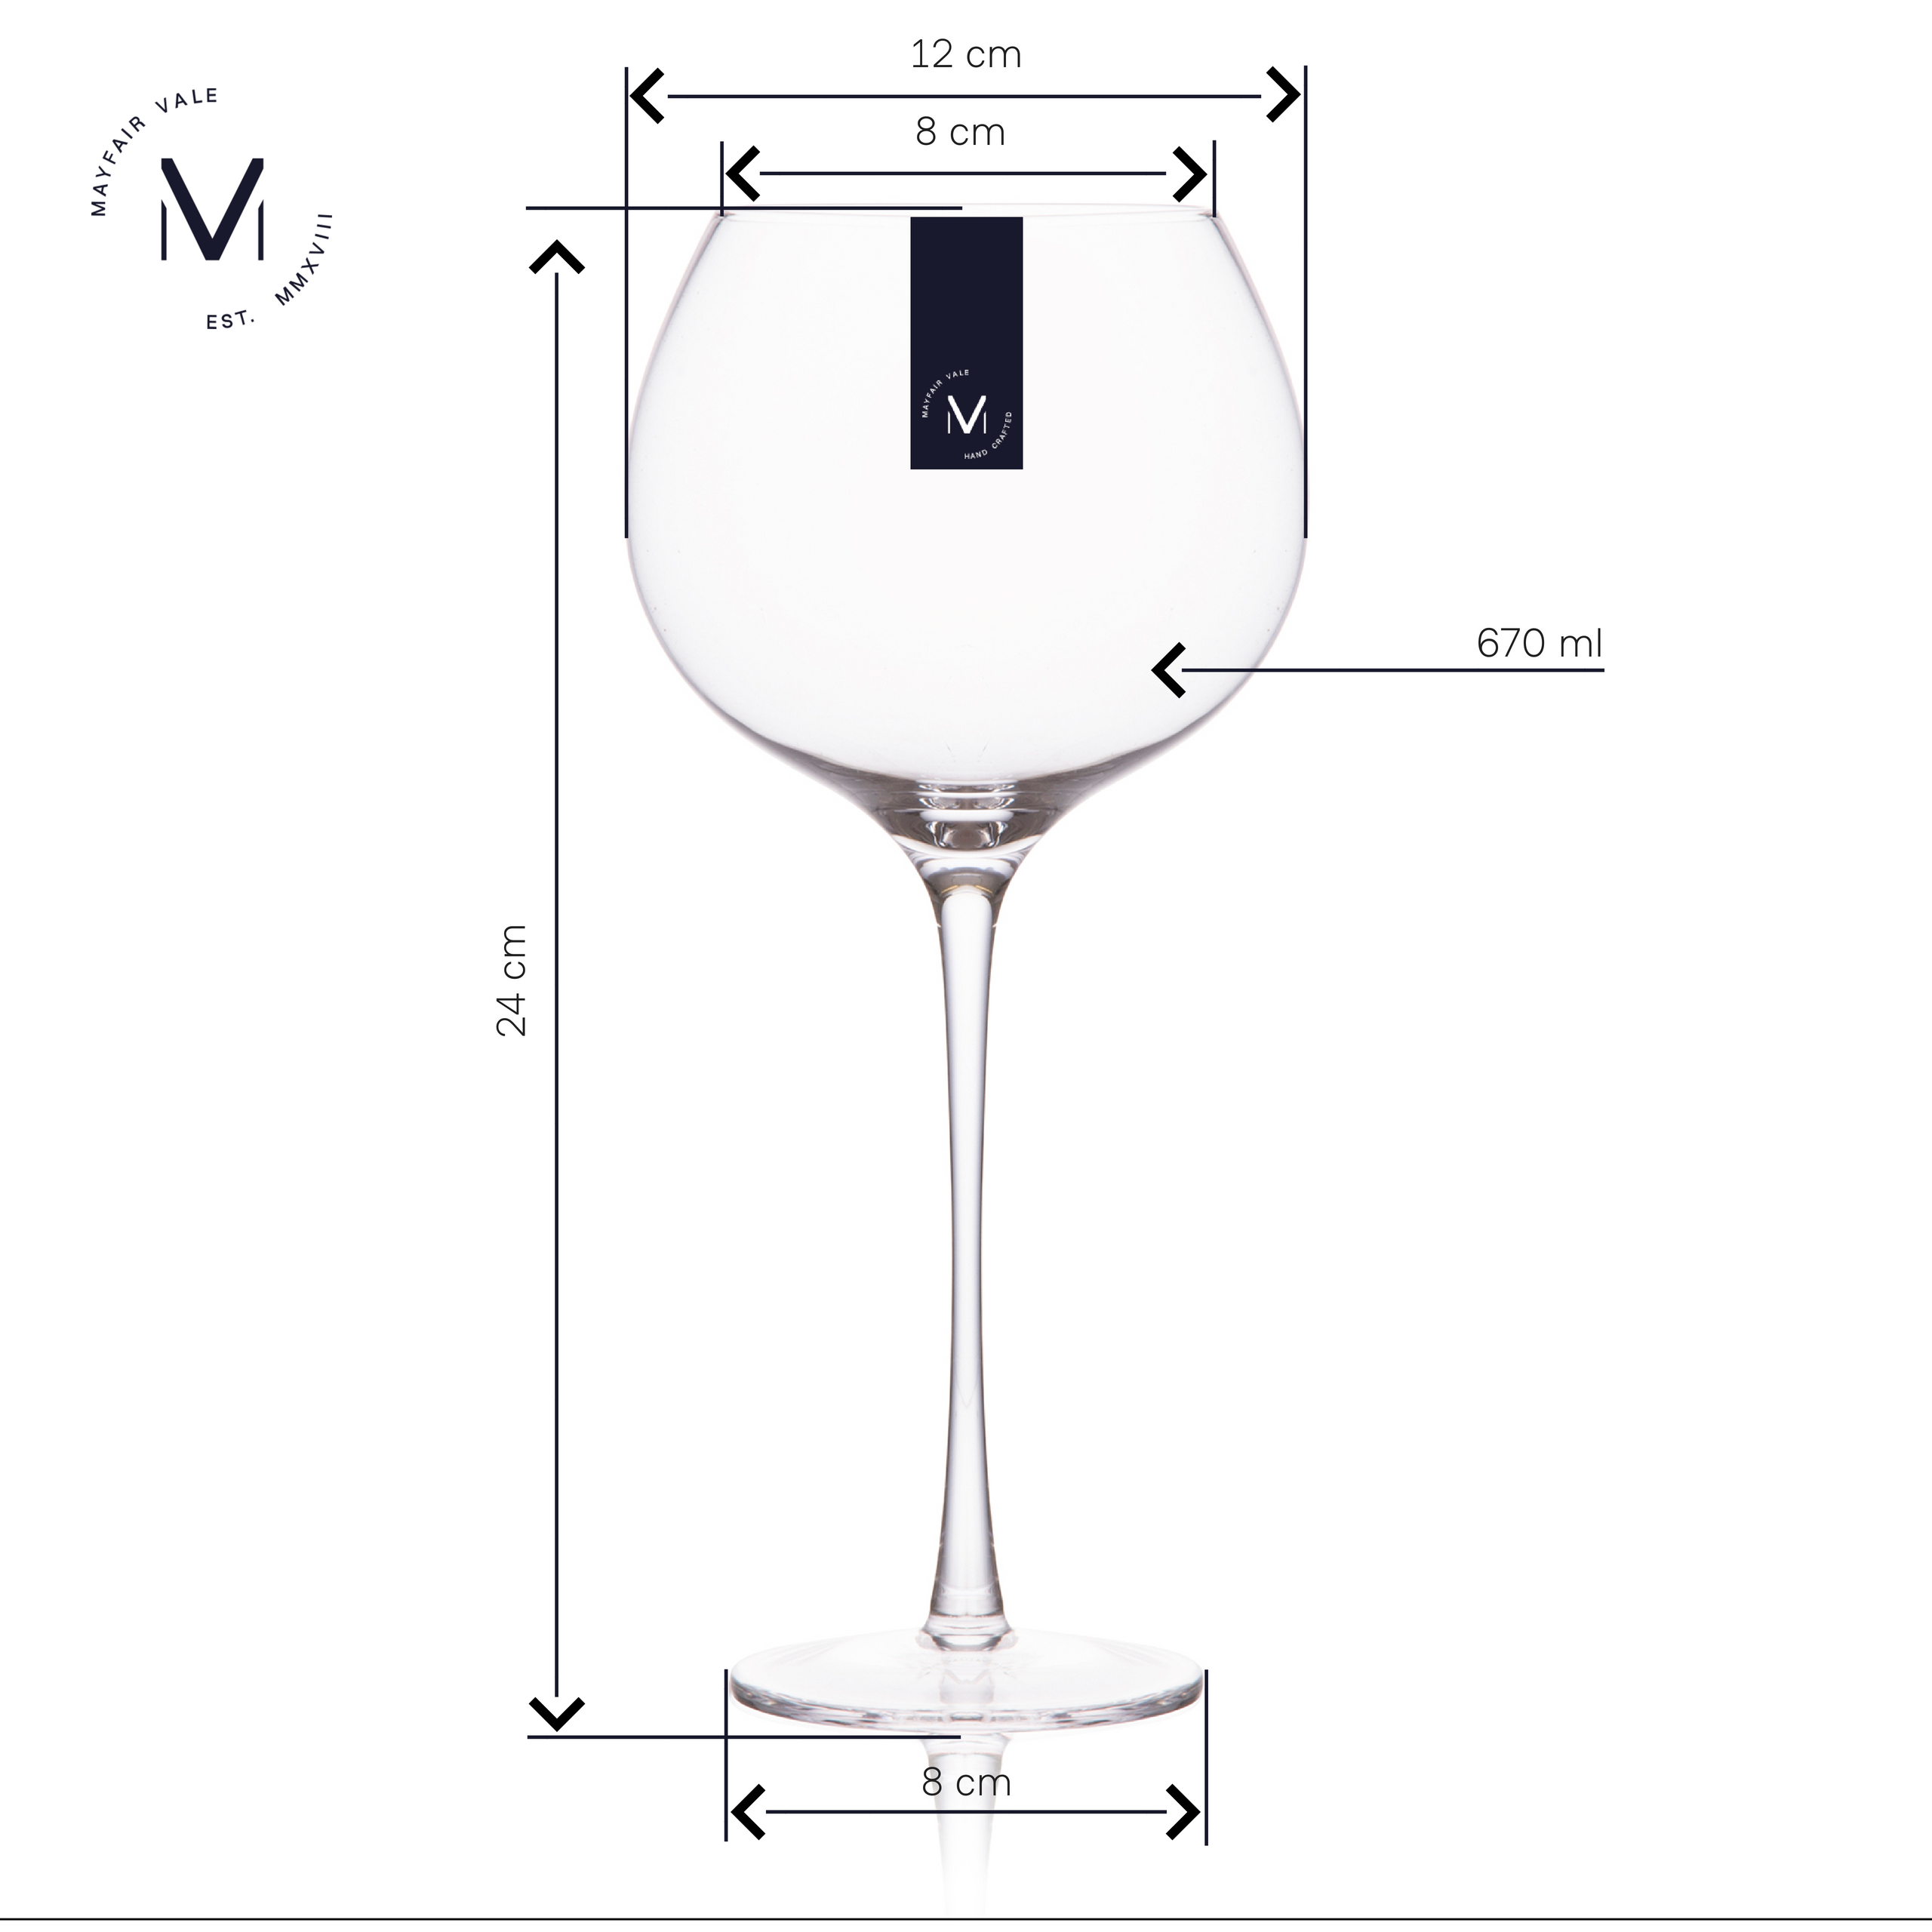 Mayfair Vale Crystal Balloon Gin Glass Set Dimensions Gin And